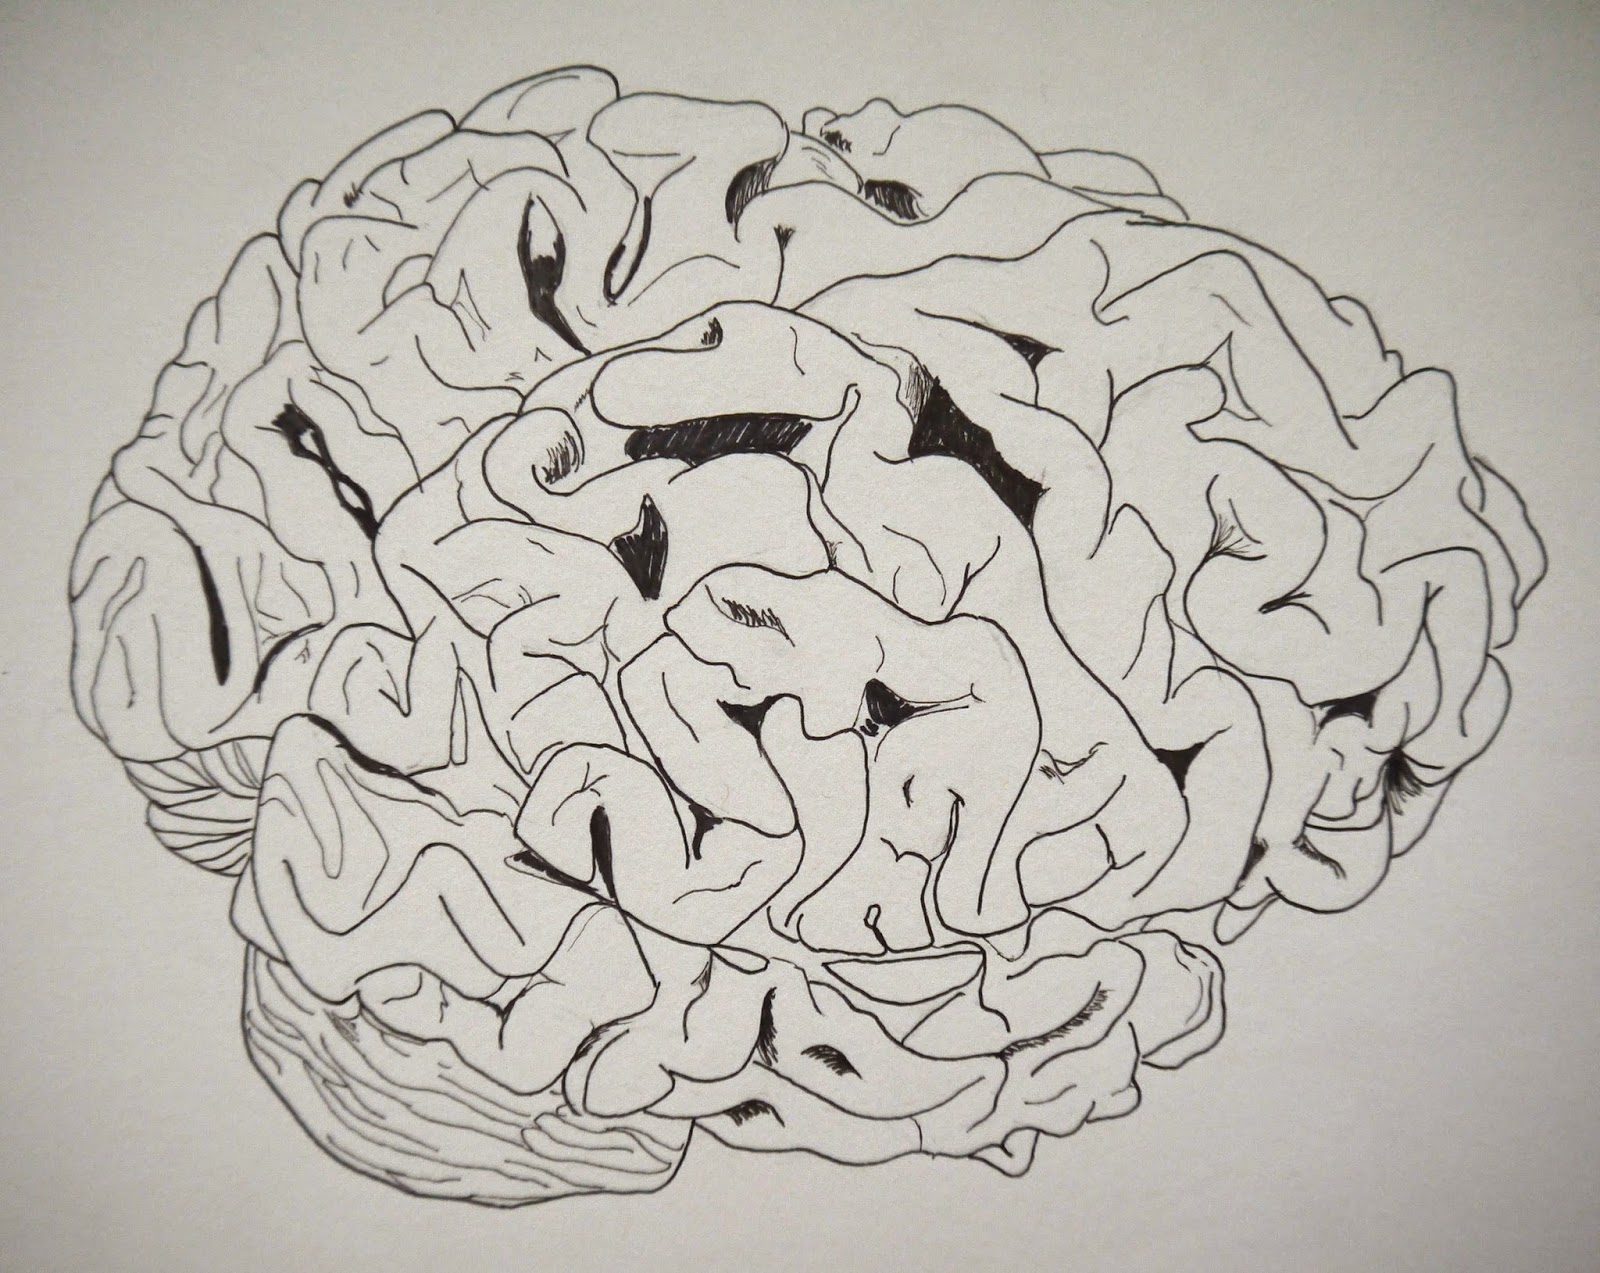 Drawn brains sketched Drawing brain the Postcognitive Topics: